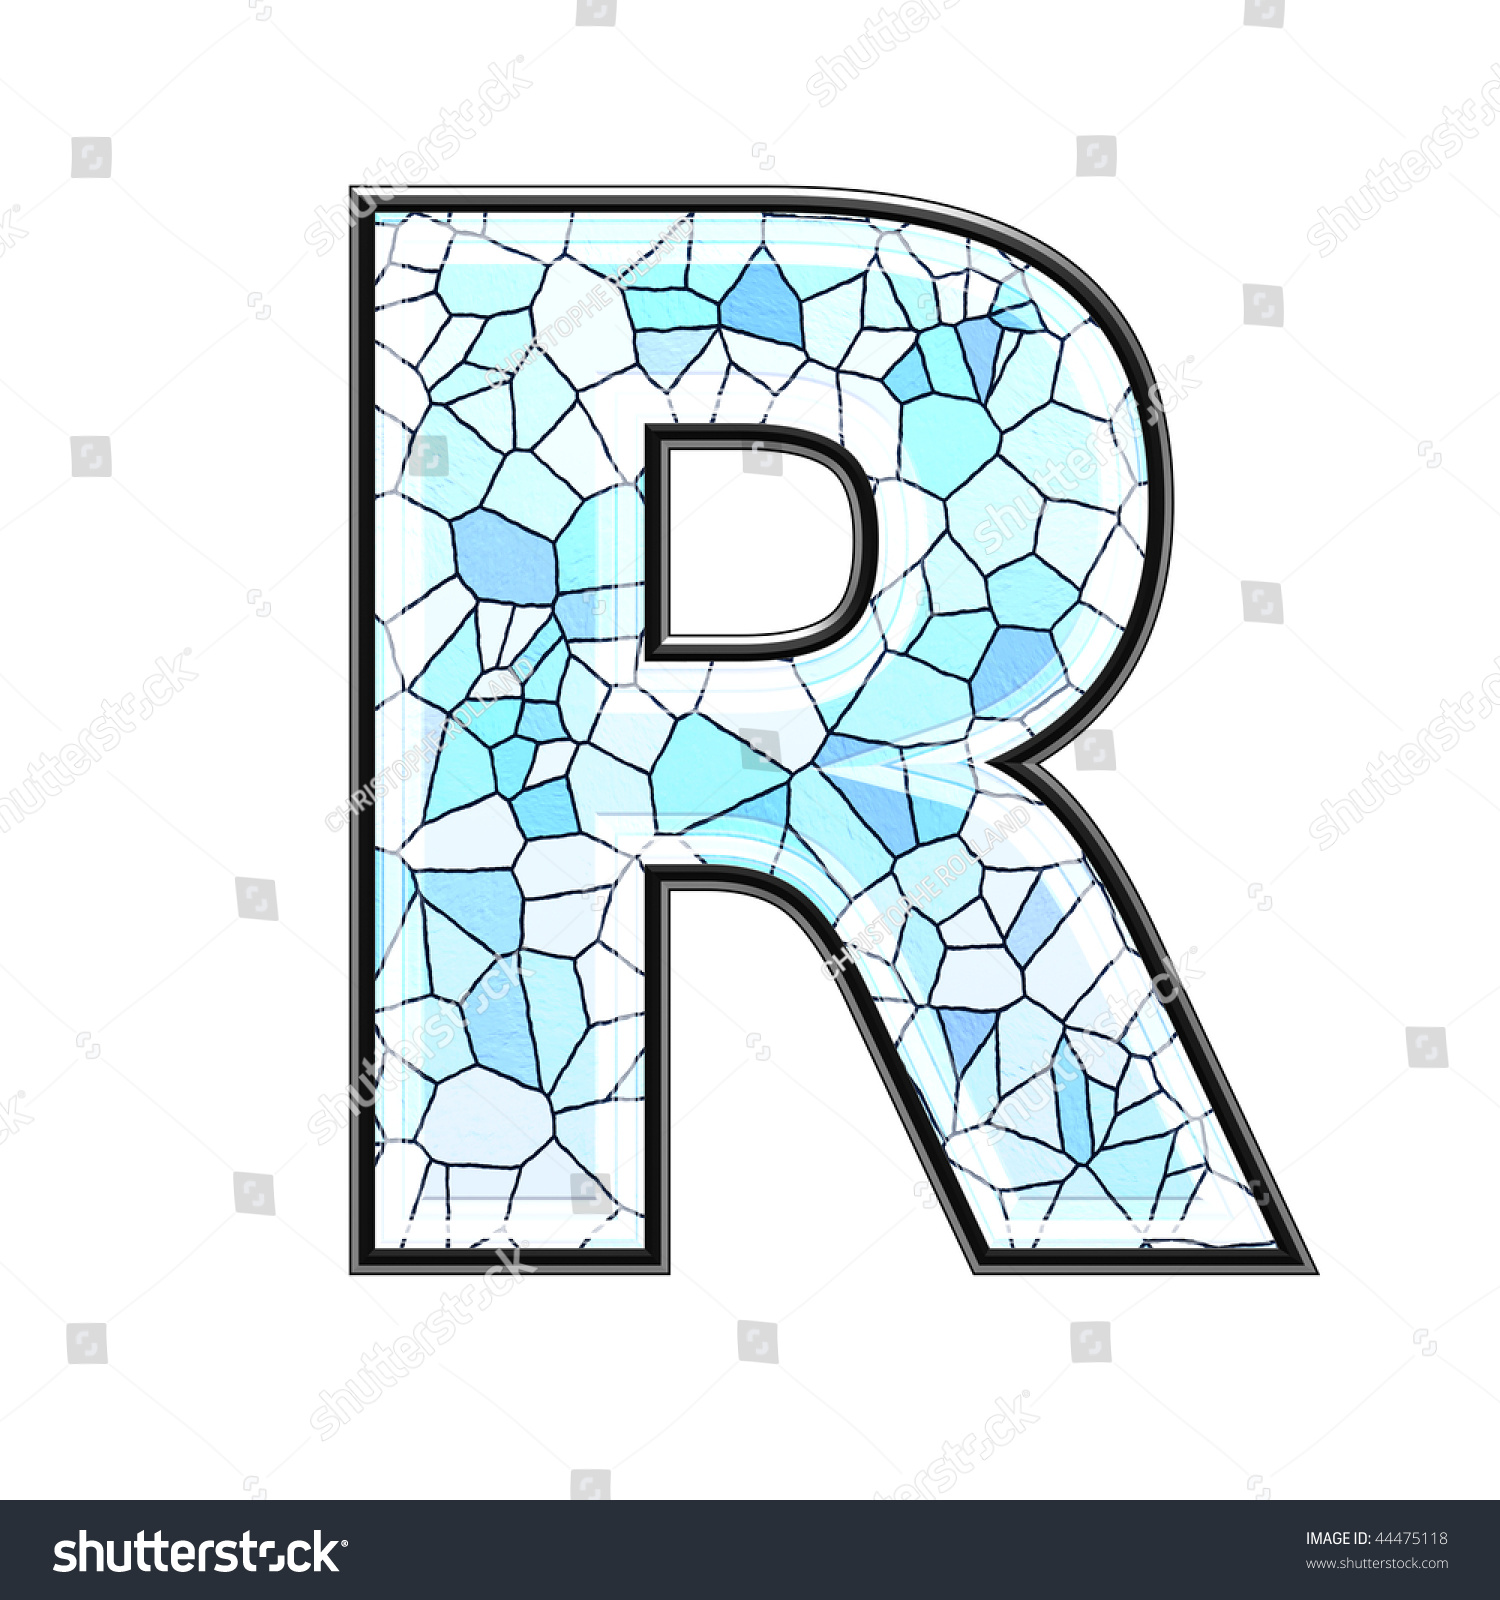 Abstract 3d letter ceramic tile texture stock illustration abstract 3d letter with ceramic tile texture r doublecrazyfo Gallery